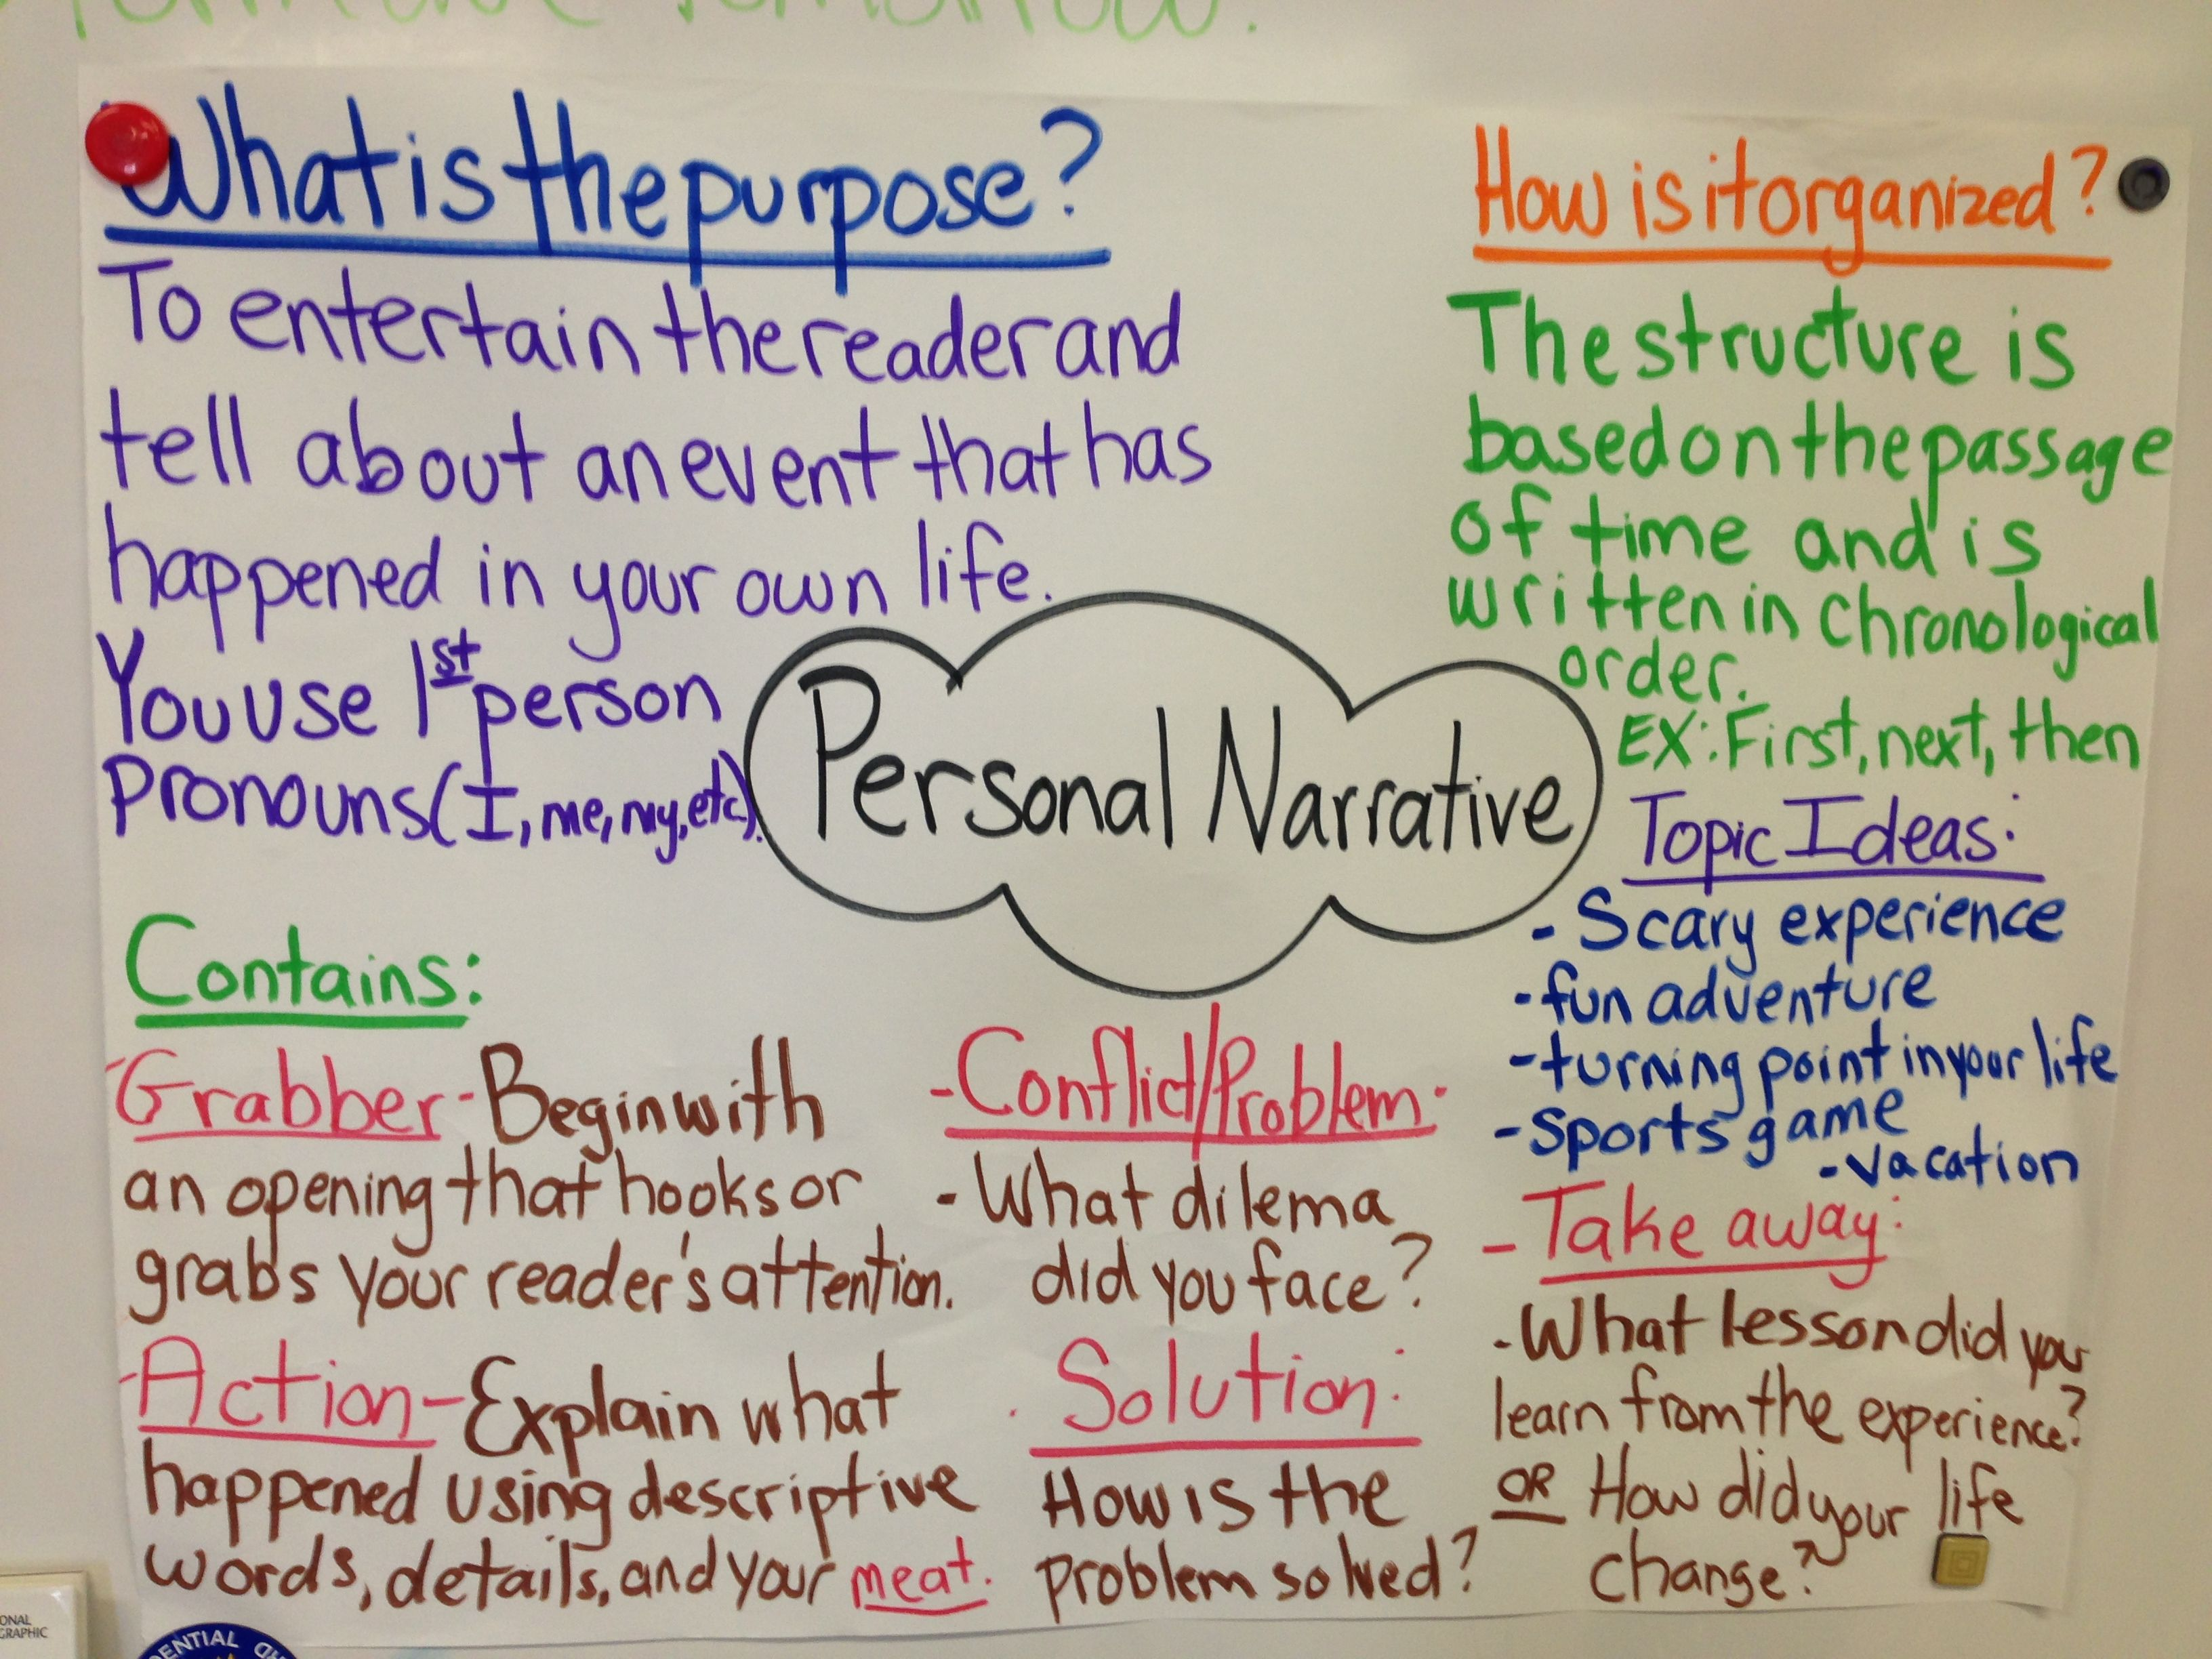 008 Personal Narrative Essay Examples For 6th Grade Example Staggering Topics 6 Full